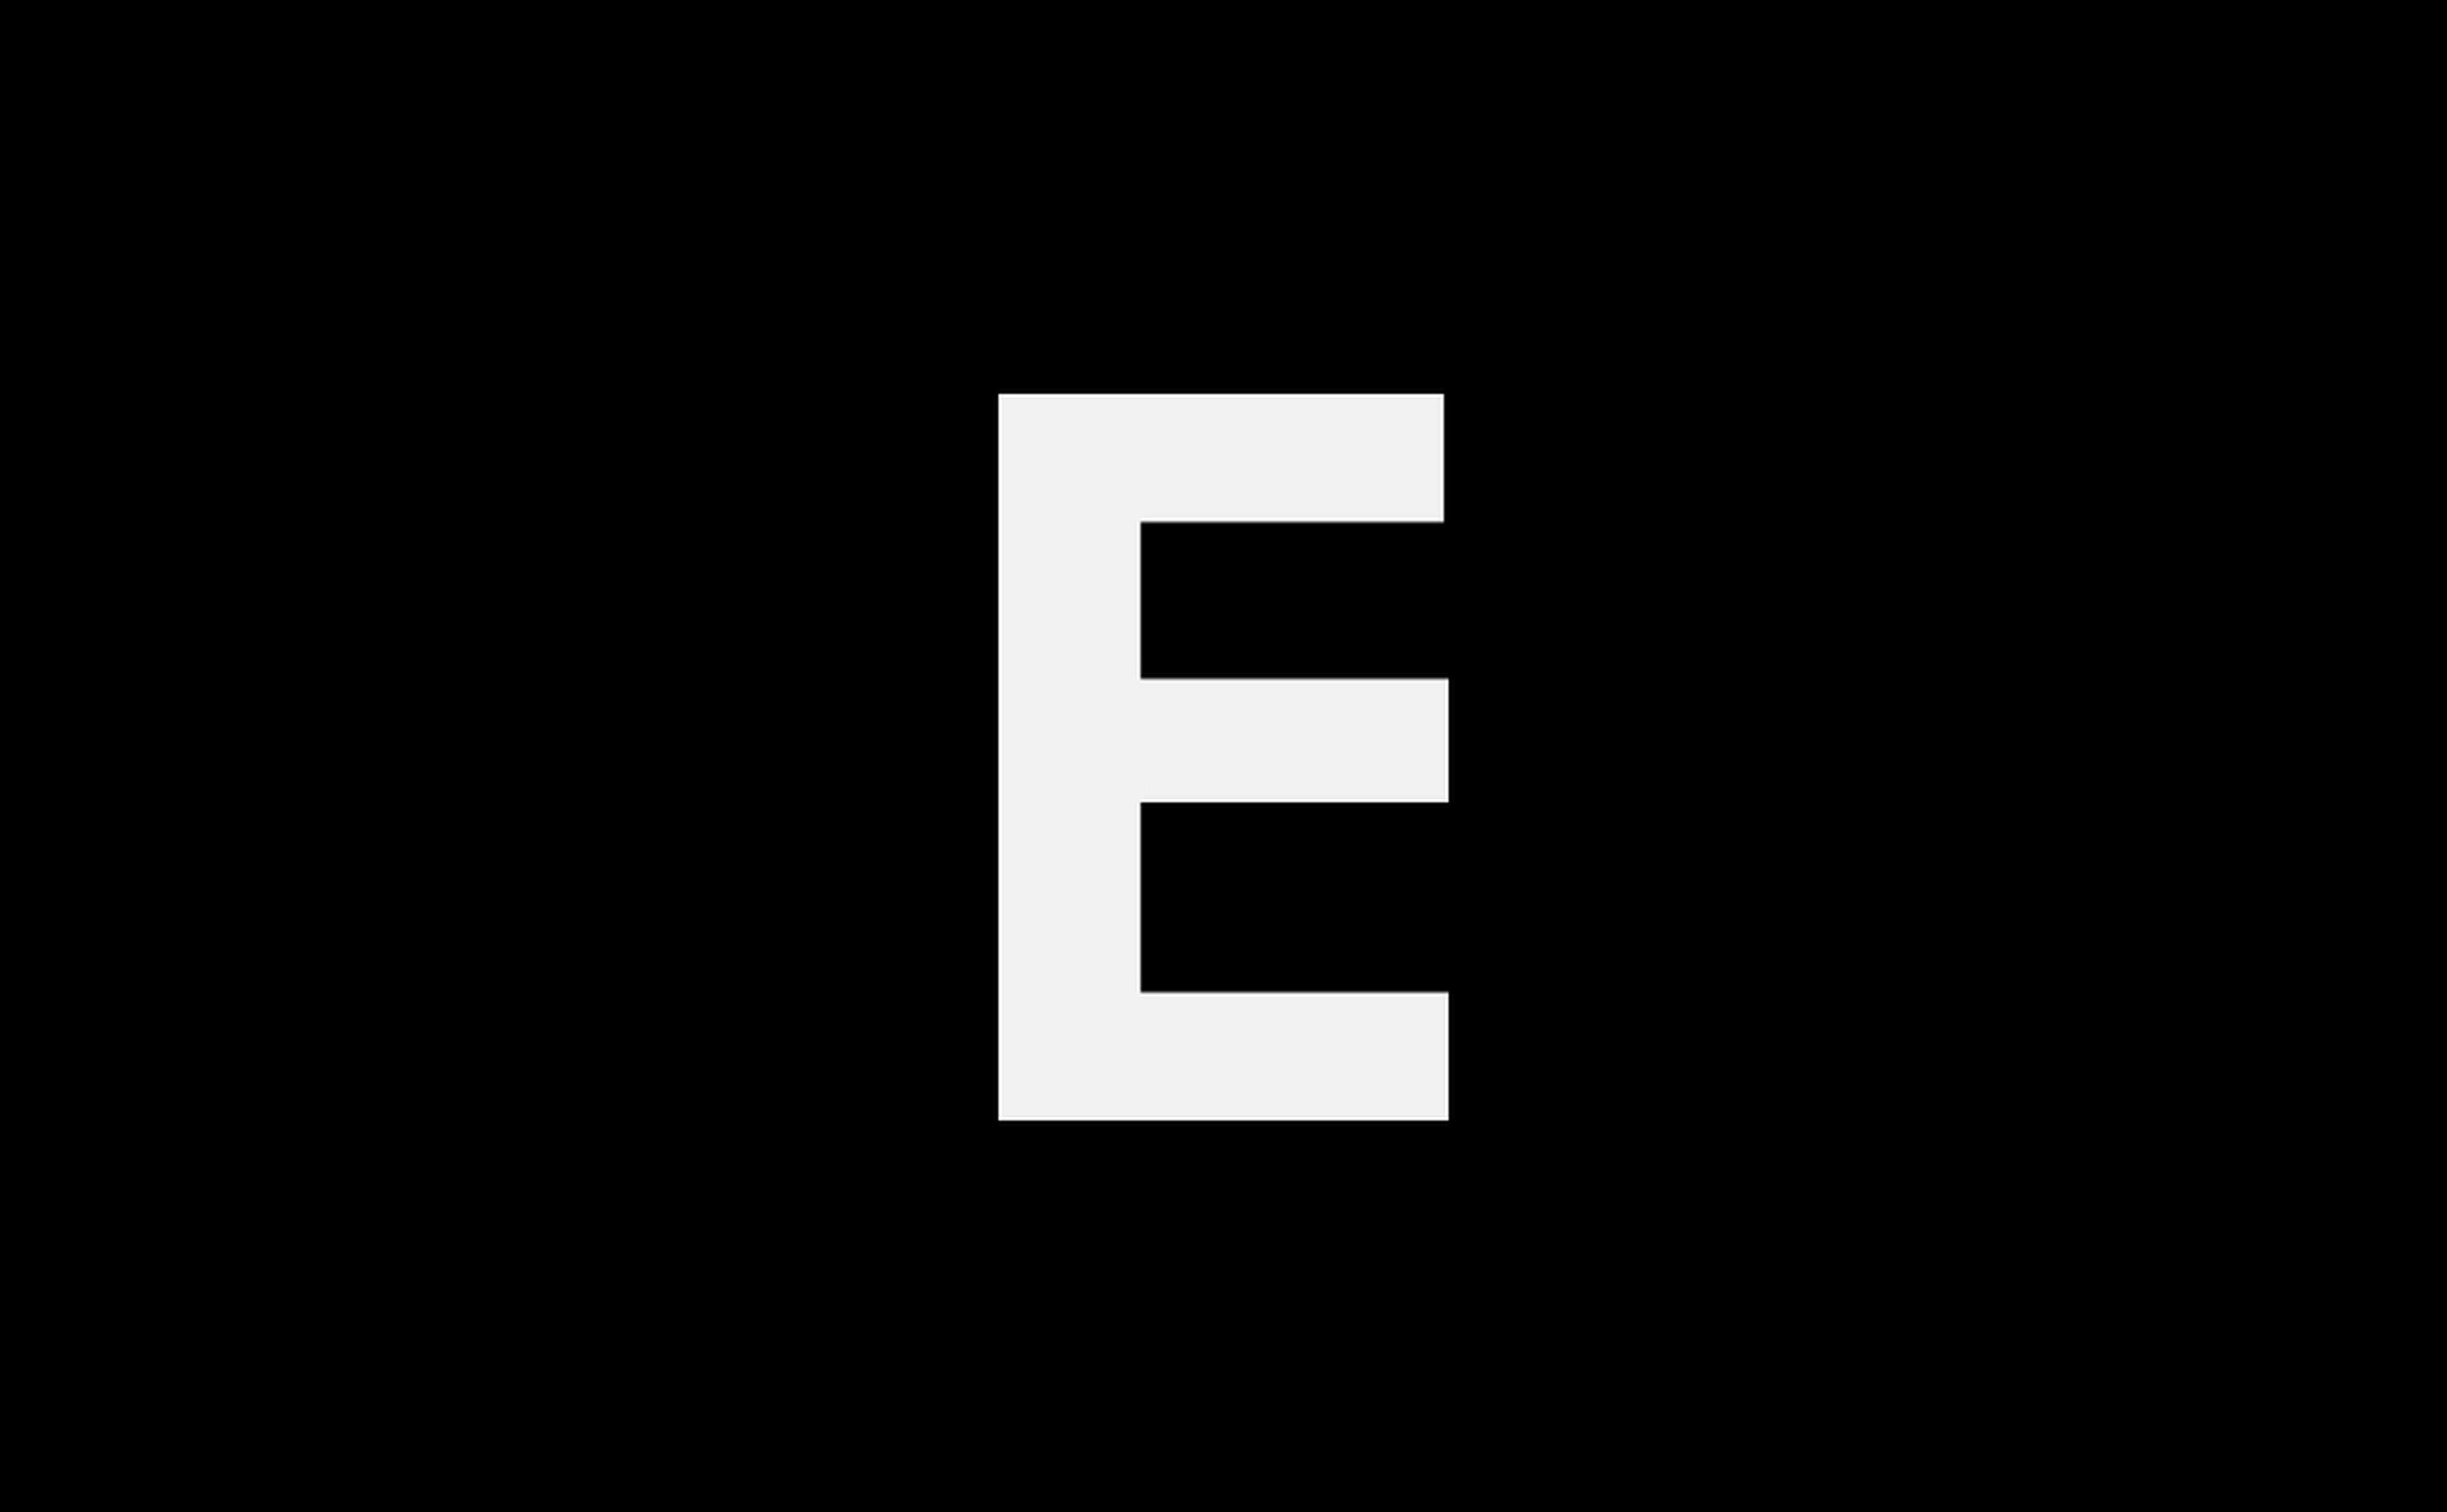 indoors, metal, selective focus, close-up, focus on foreground, metallic, hanging, fence, night, metal grate, no people, railing, illuminated, safety, window, focus on background, sunlight, animal themes